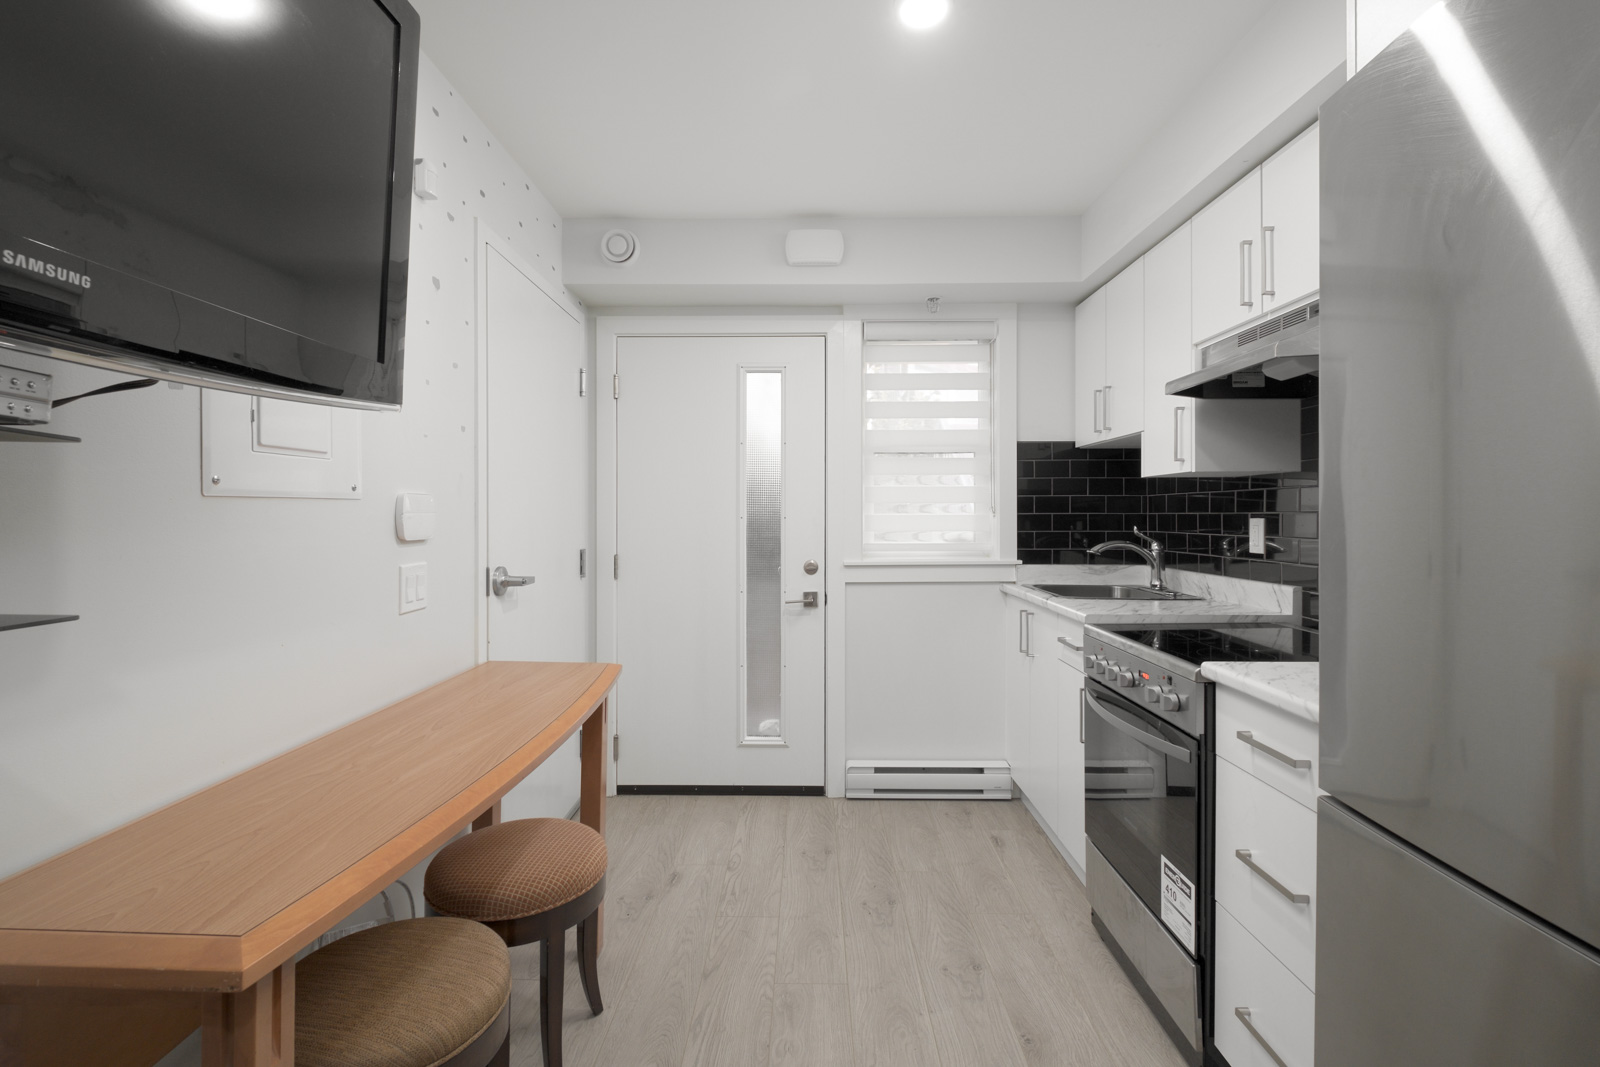 kitchen in rental house in the norquay neighbourhood of east Vancouver